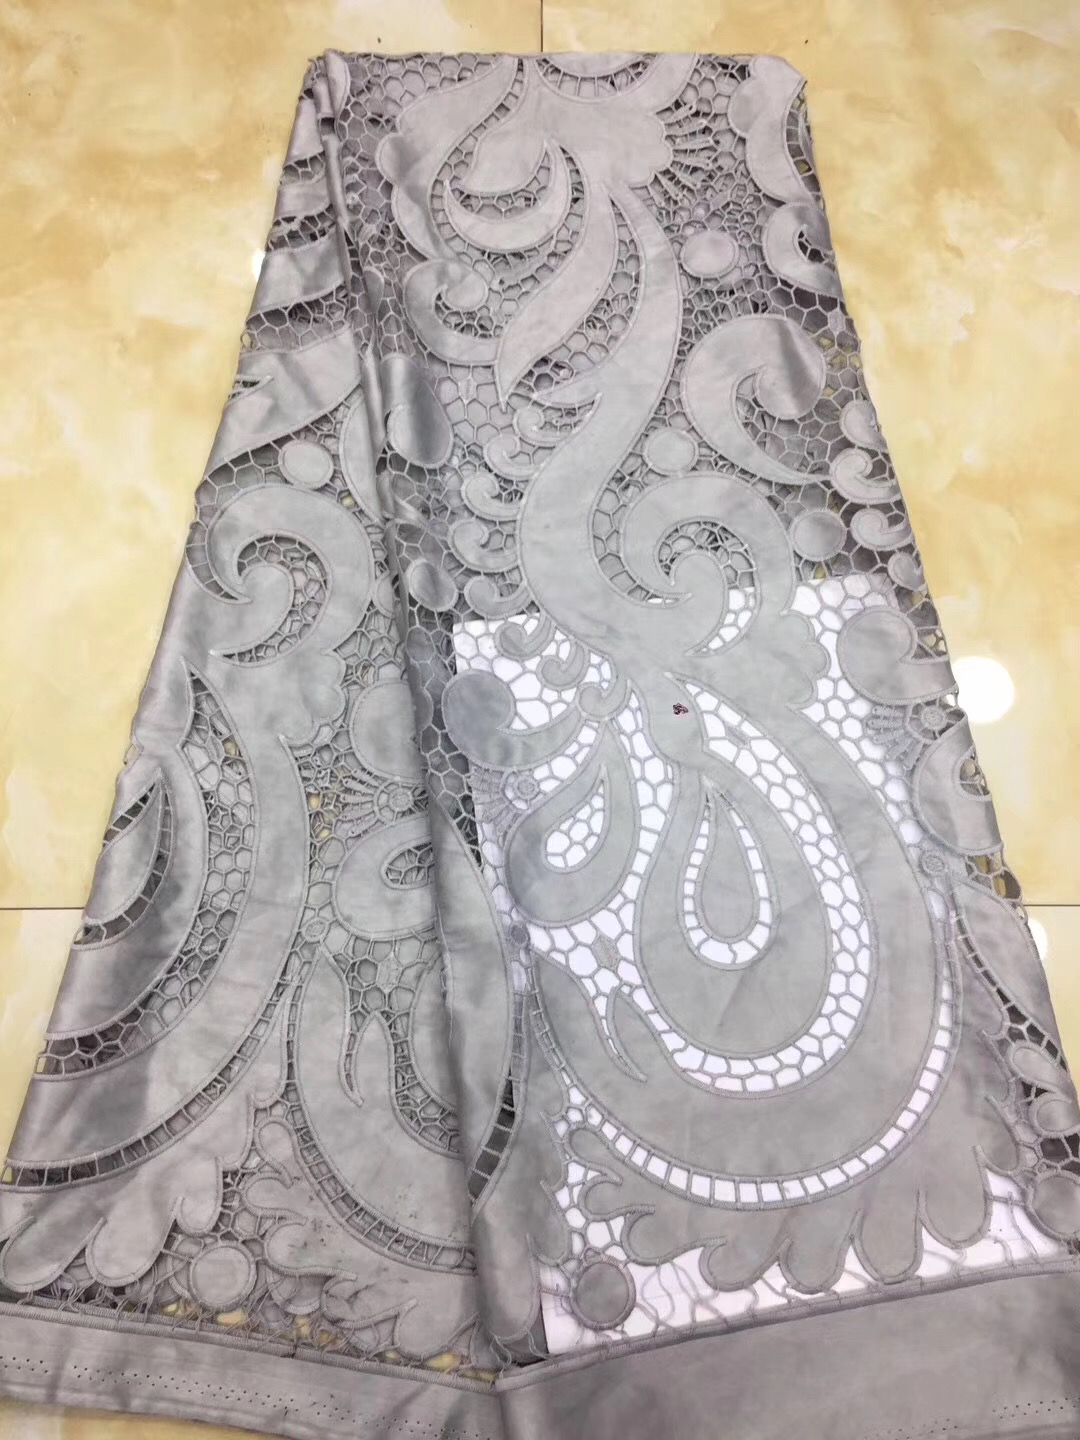 Wholesales Latest African Voile Laces 2019 Arican Dry Cotton Lace Fabric Embroidery Swiss Voile Lace Fabric For Cloth DP51